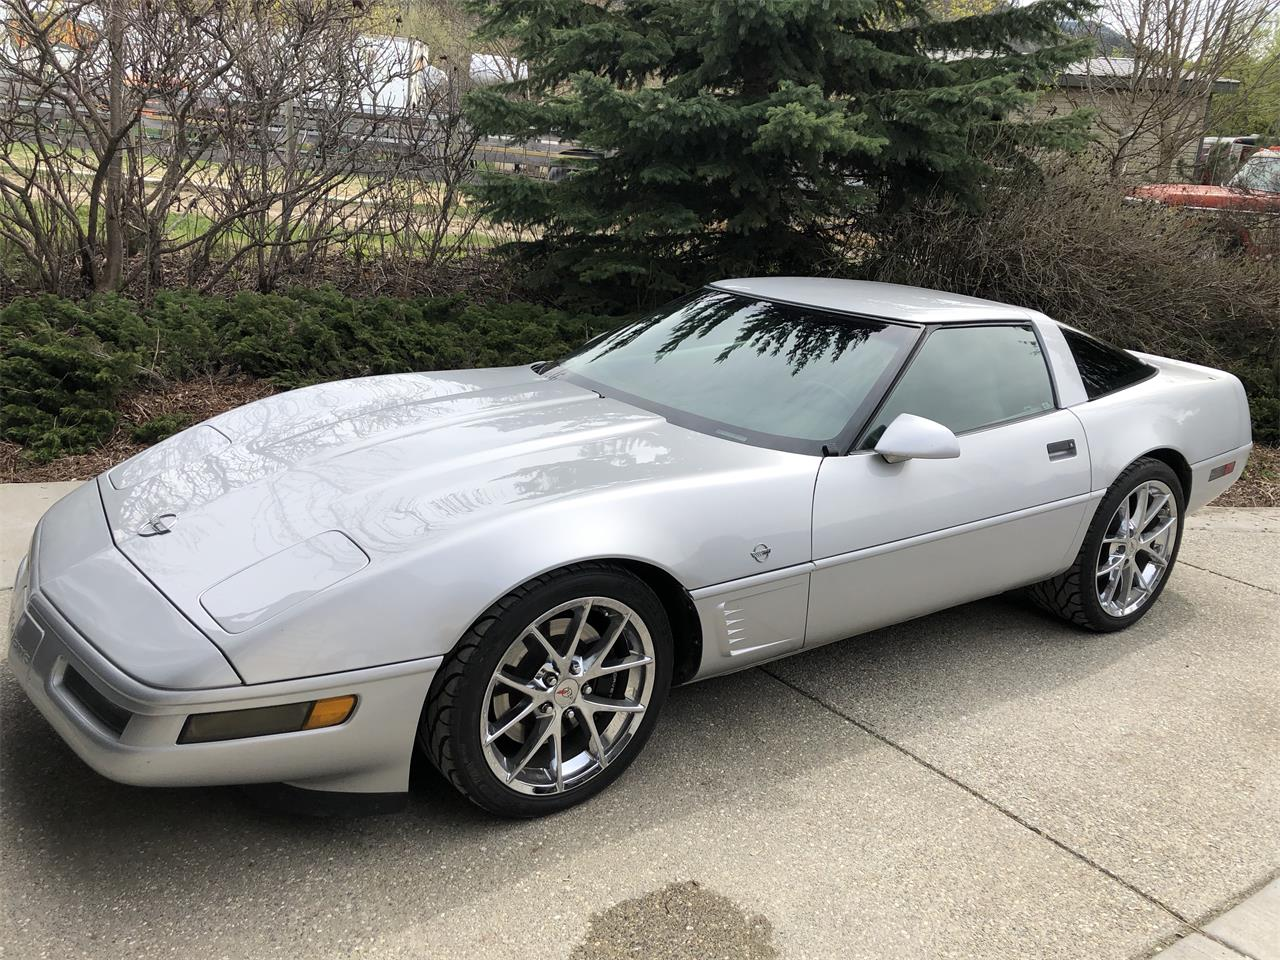 1996 Chevrolet Corvette (CC-1231130) for sale in Armstrong, British Columbia